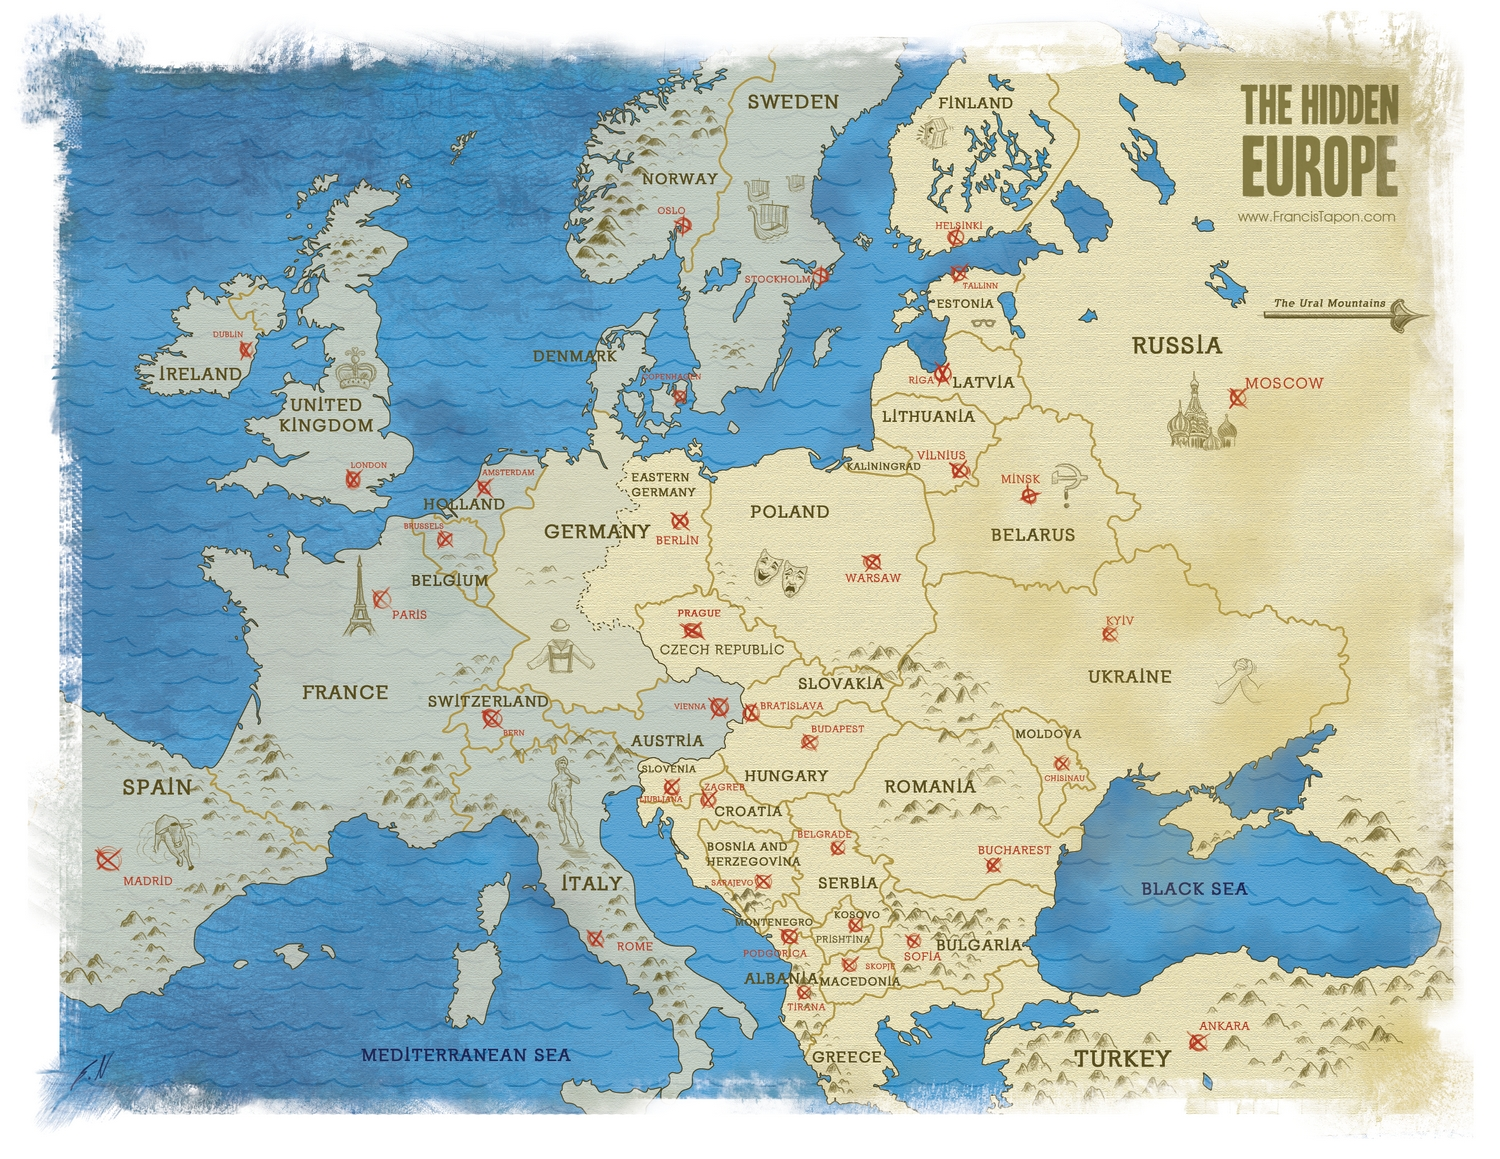 Where is eastern europe and what countries are in it the hidden eastern europe map from francis tapons book the hidden europe gumiabroncs Image collections